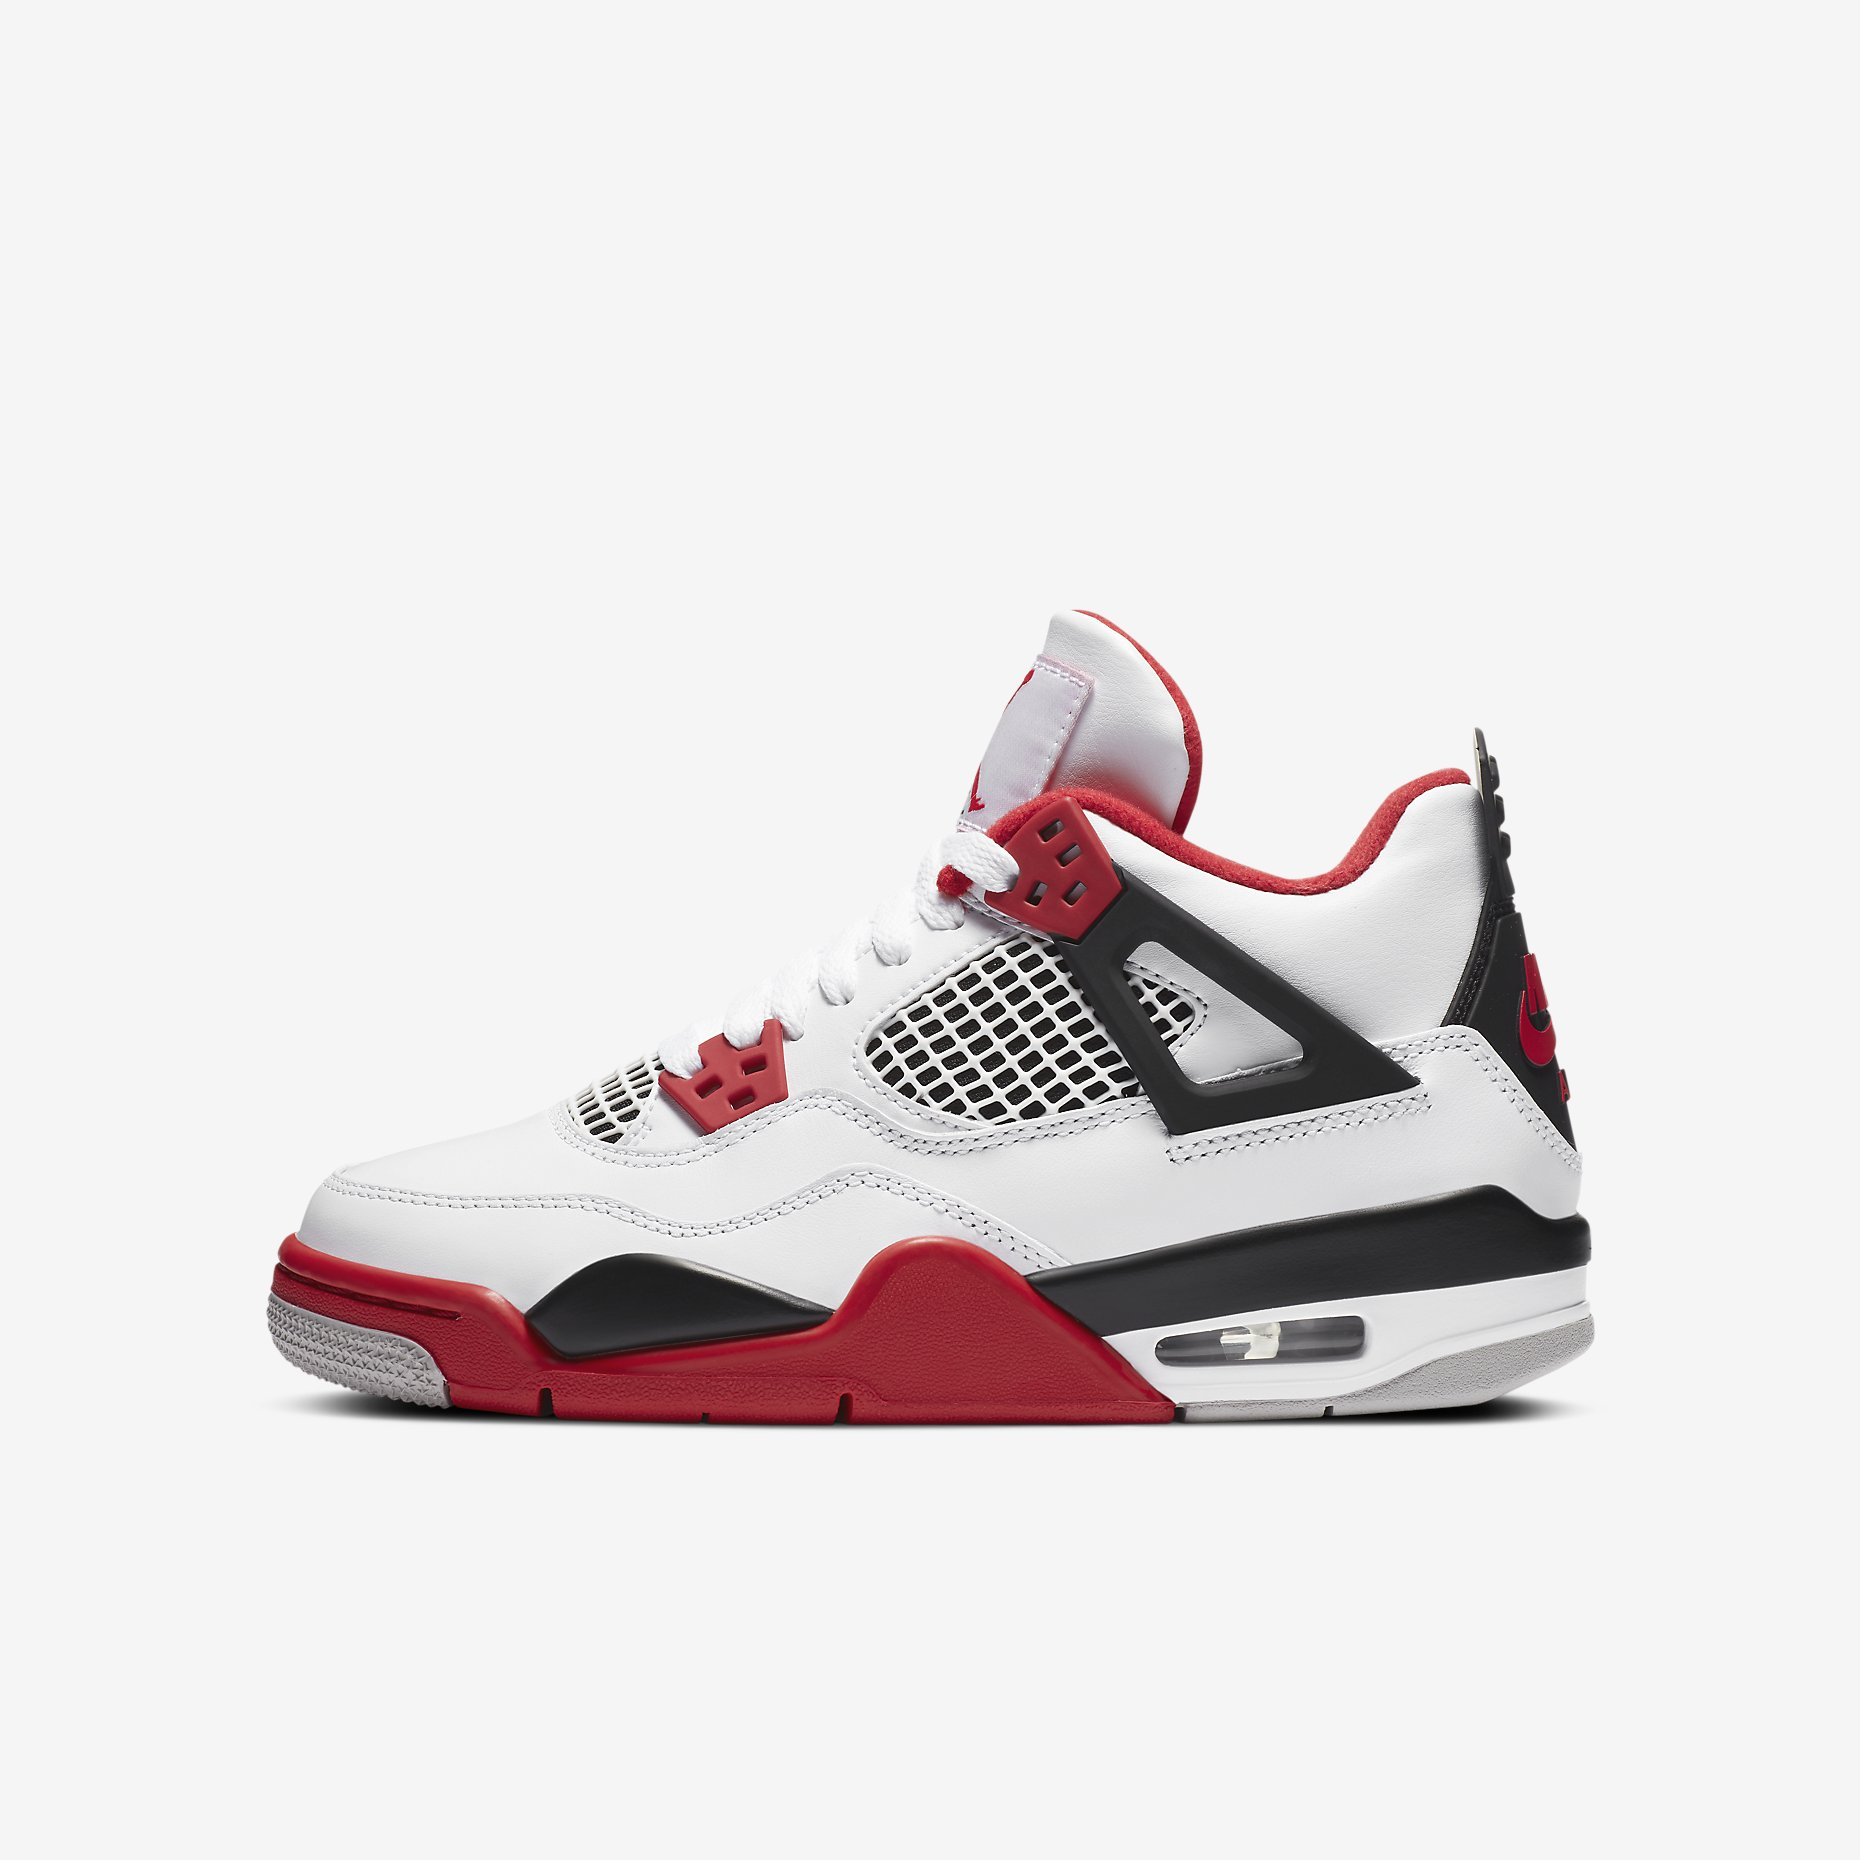 Air Jordan 4 Retro GS 'Fire Red'}